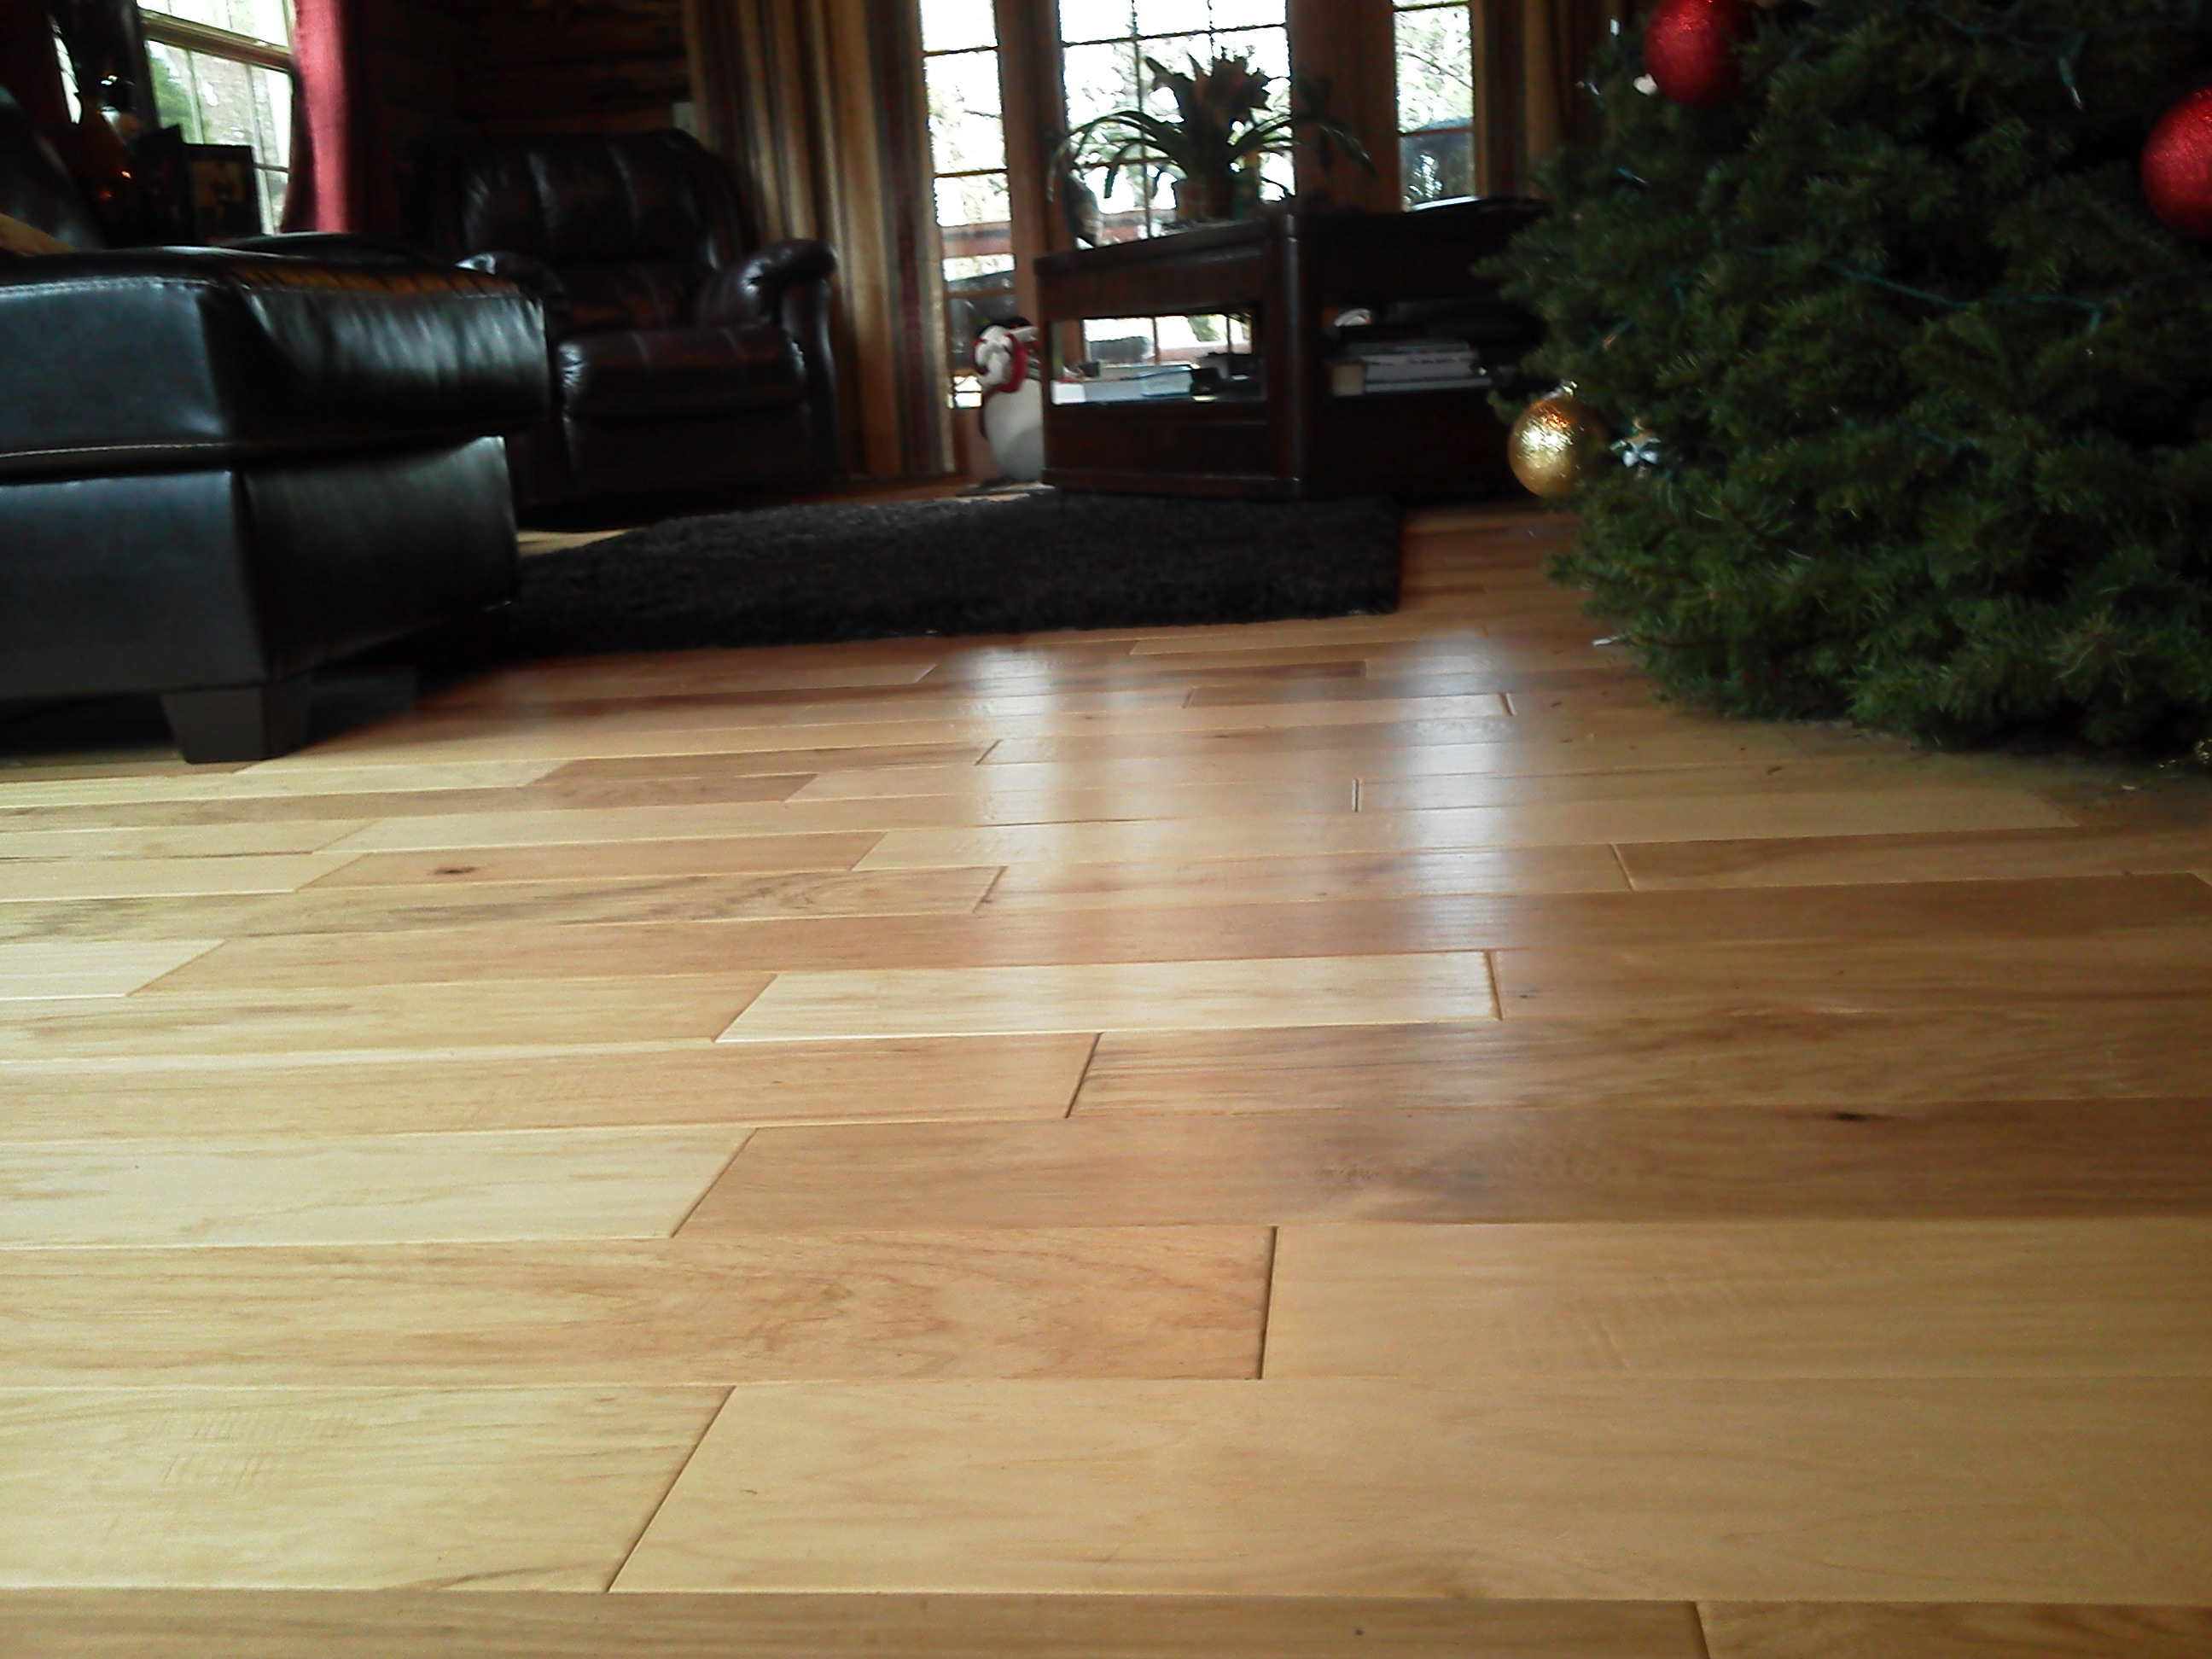 to able flooring lady it floors using not hardwood have about refinished manufactured all people hickory that might l of some be is the however almost wood concerns